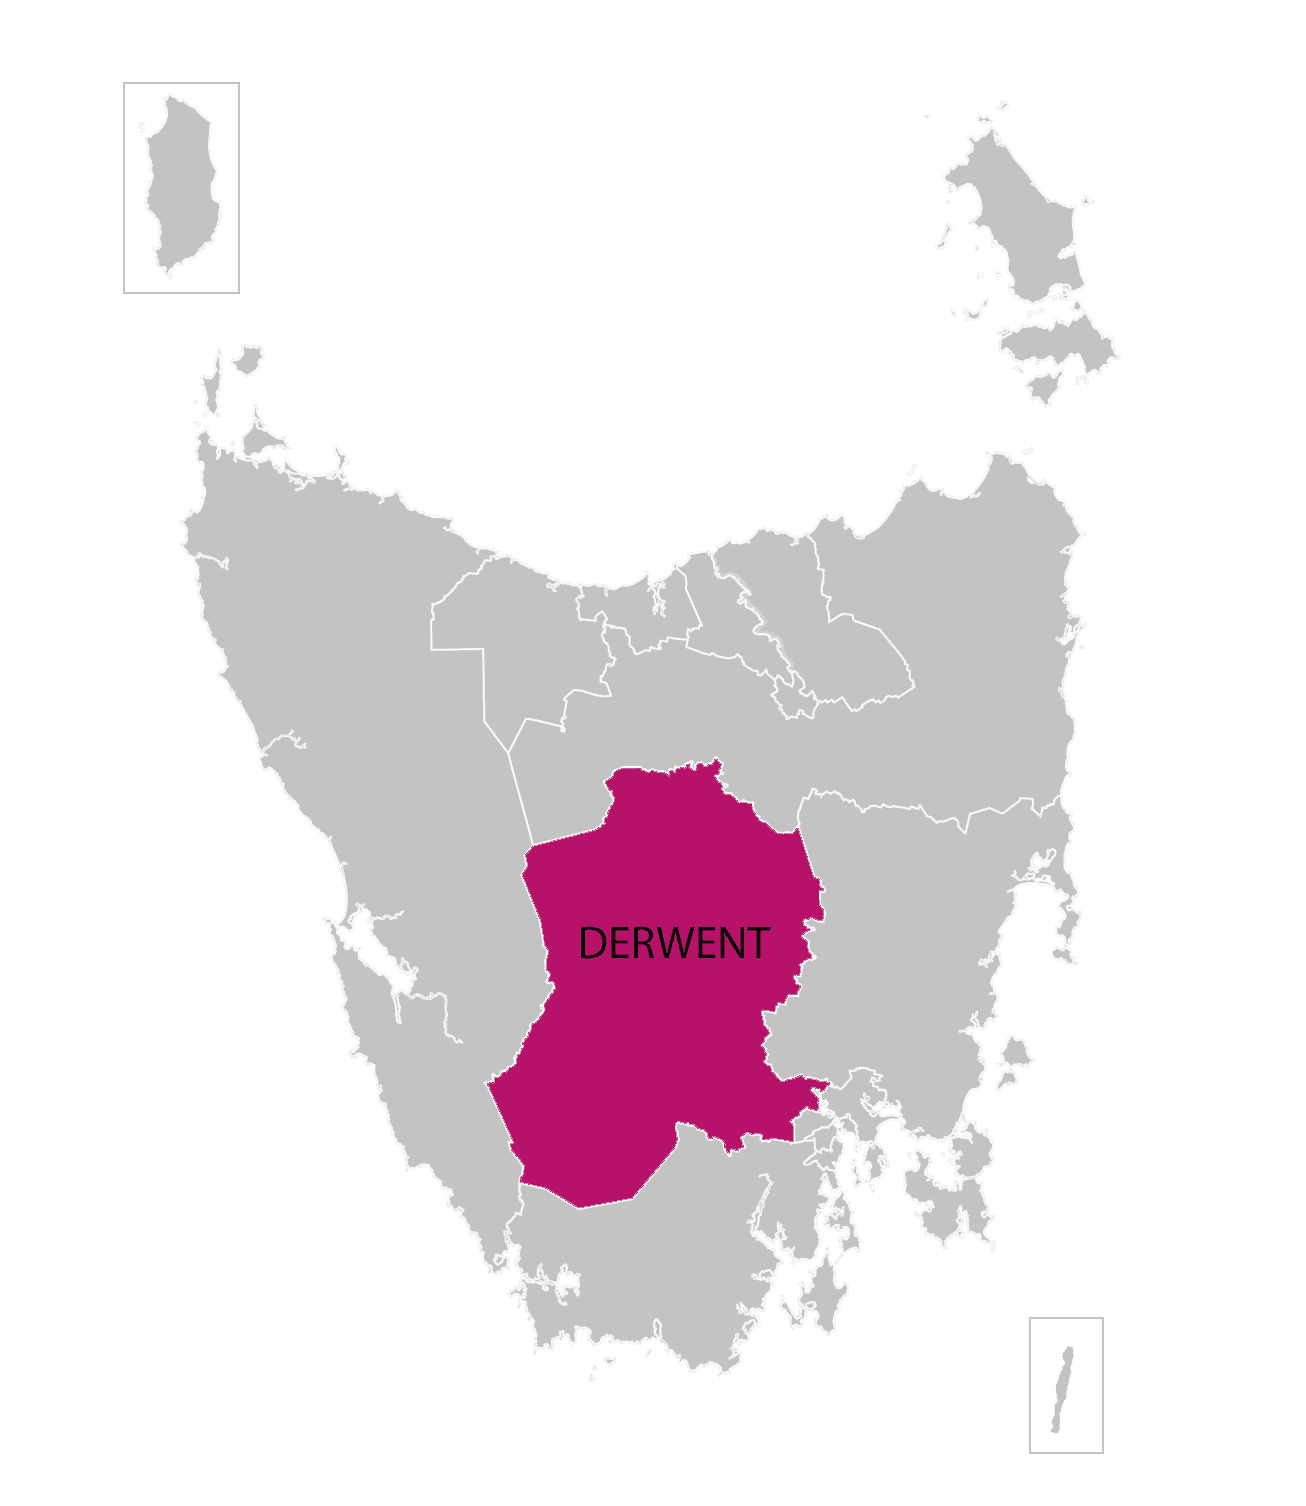 Derwent division highlighted on illustrated map of Tasmania